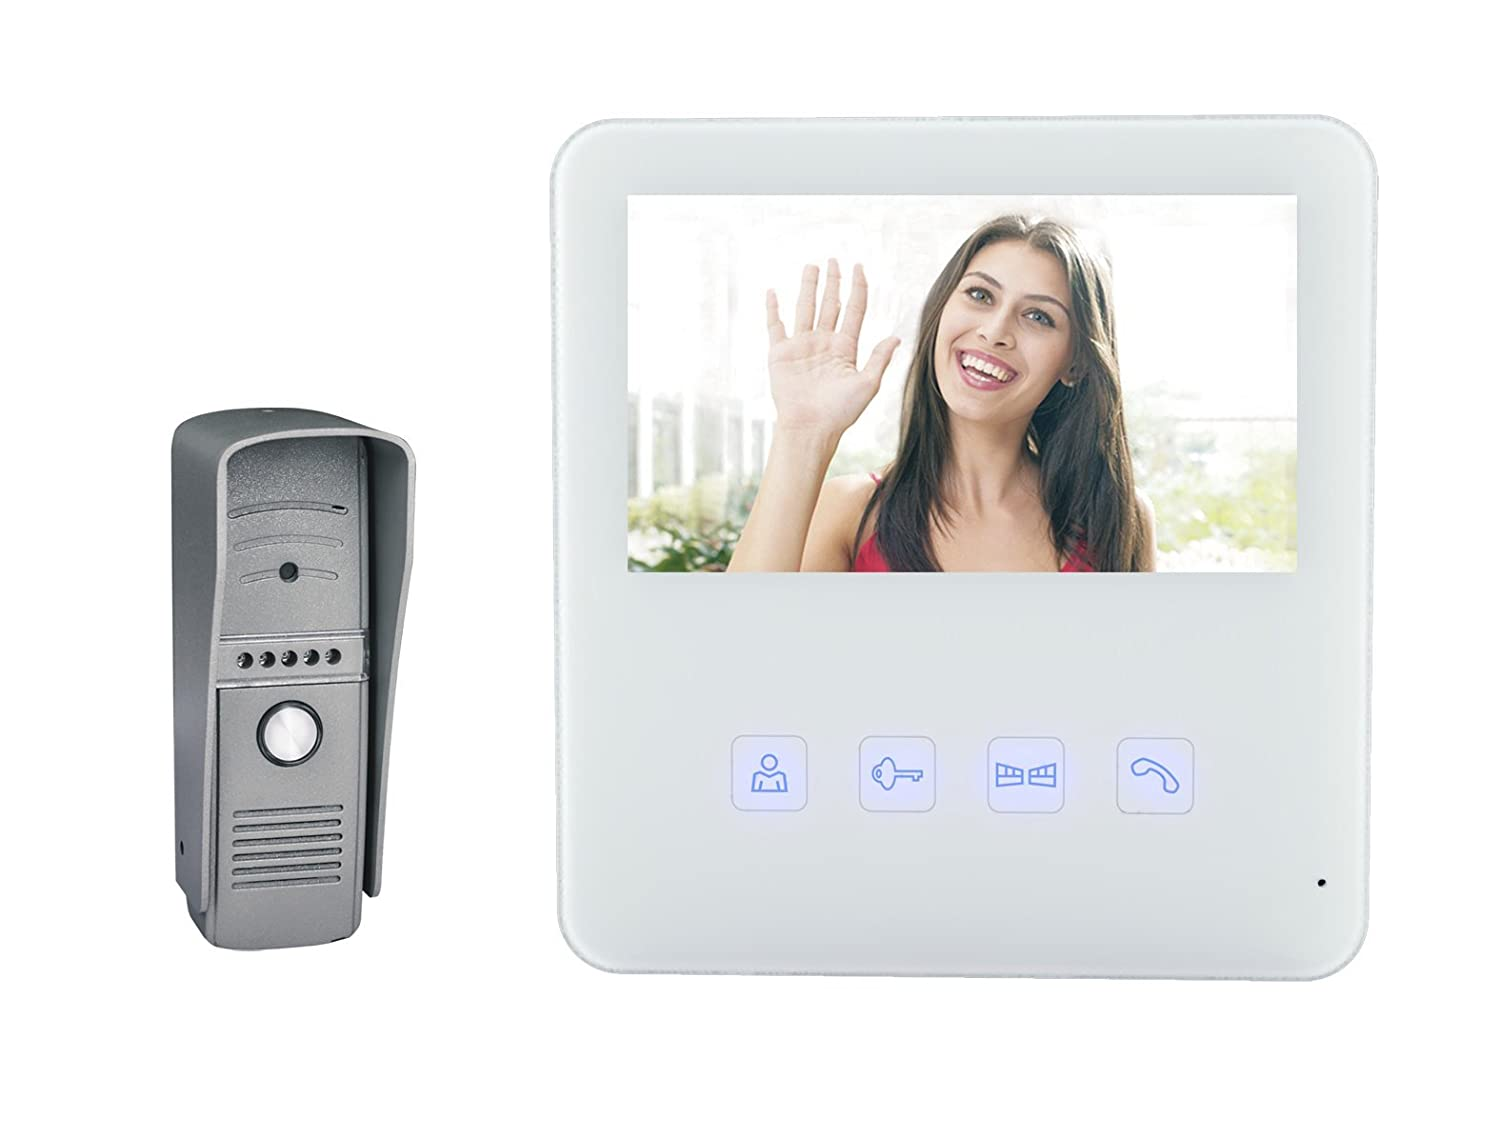 Buy Havells ACNNEXB000 Wired Color Video Door Phone (White) (With Free Installation) Online at Low Prices in India - Amazon.in  sc 1 st  Amazon.in & Buy Havells ACNNEXB000 Wired Color Video Door Phone (White) (With ...